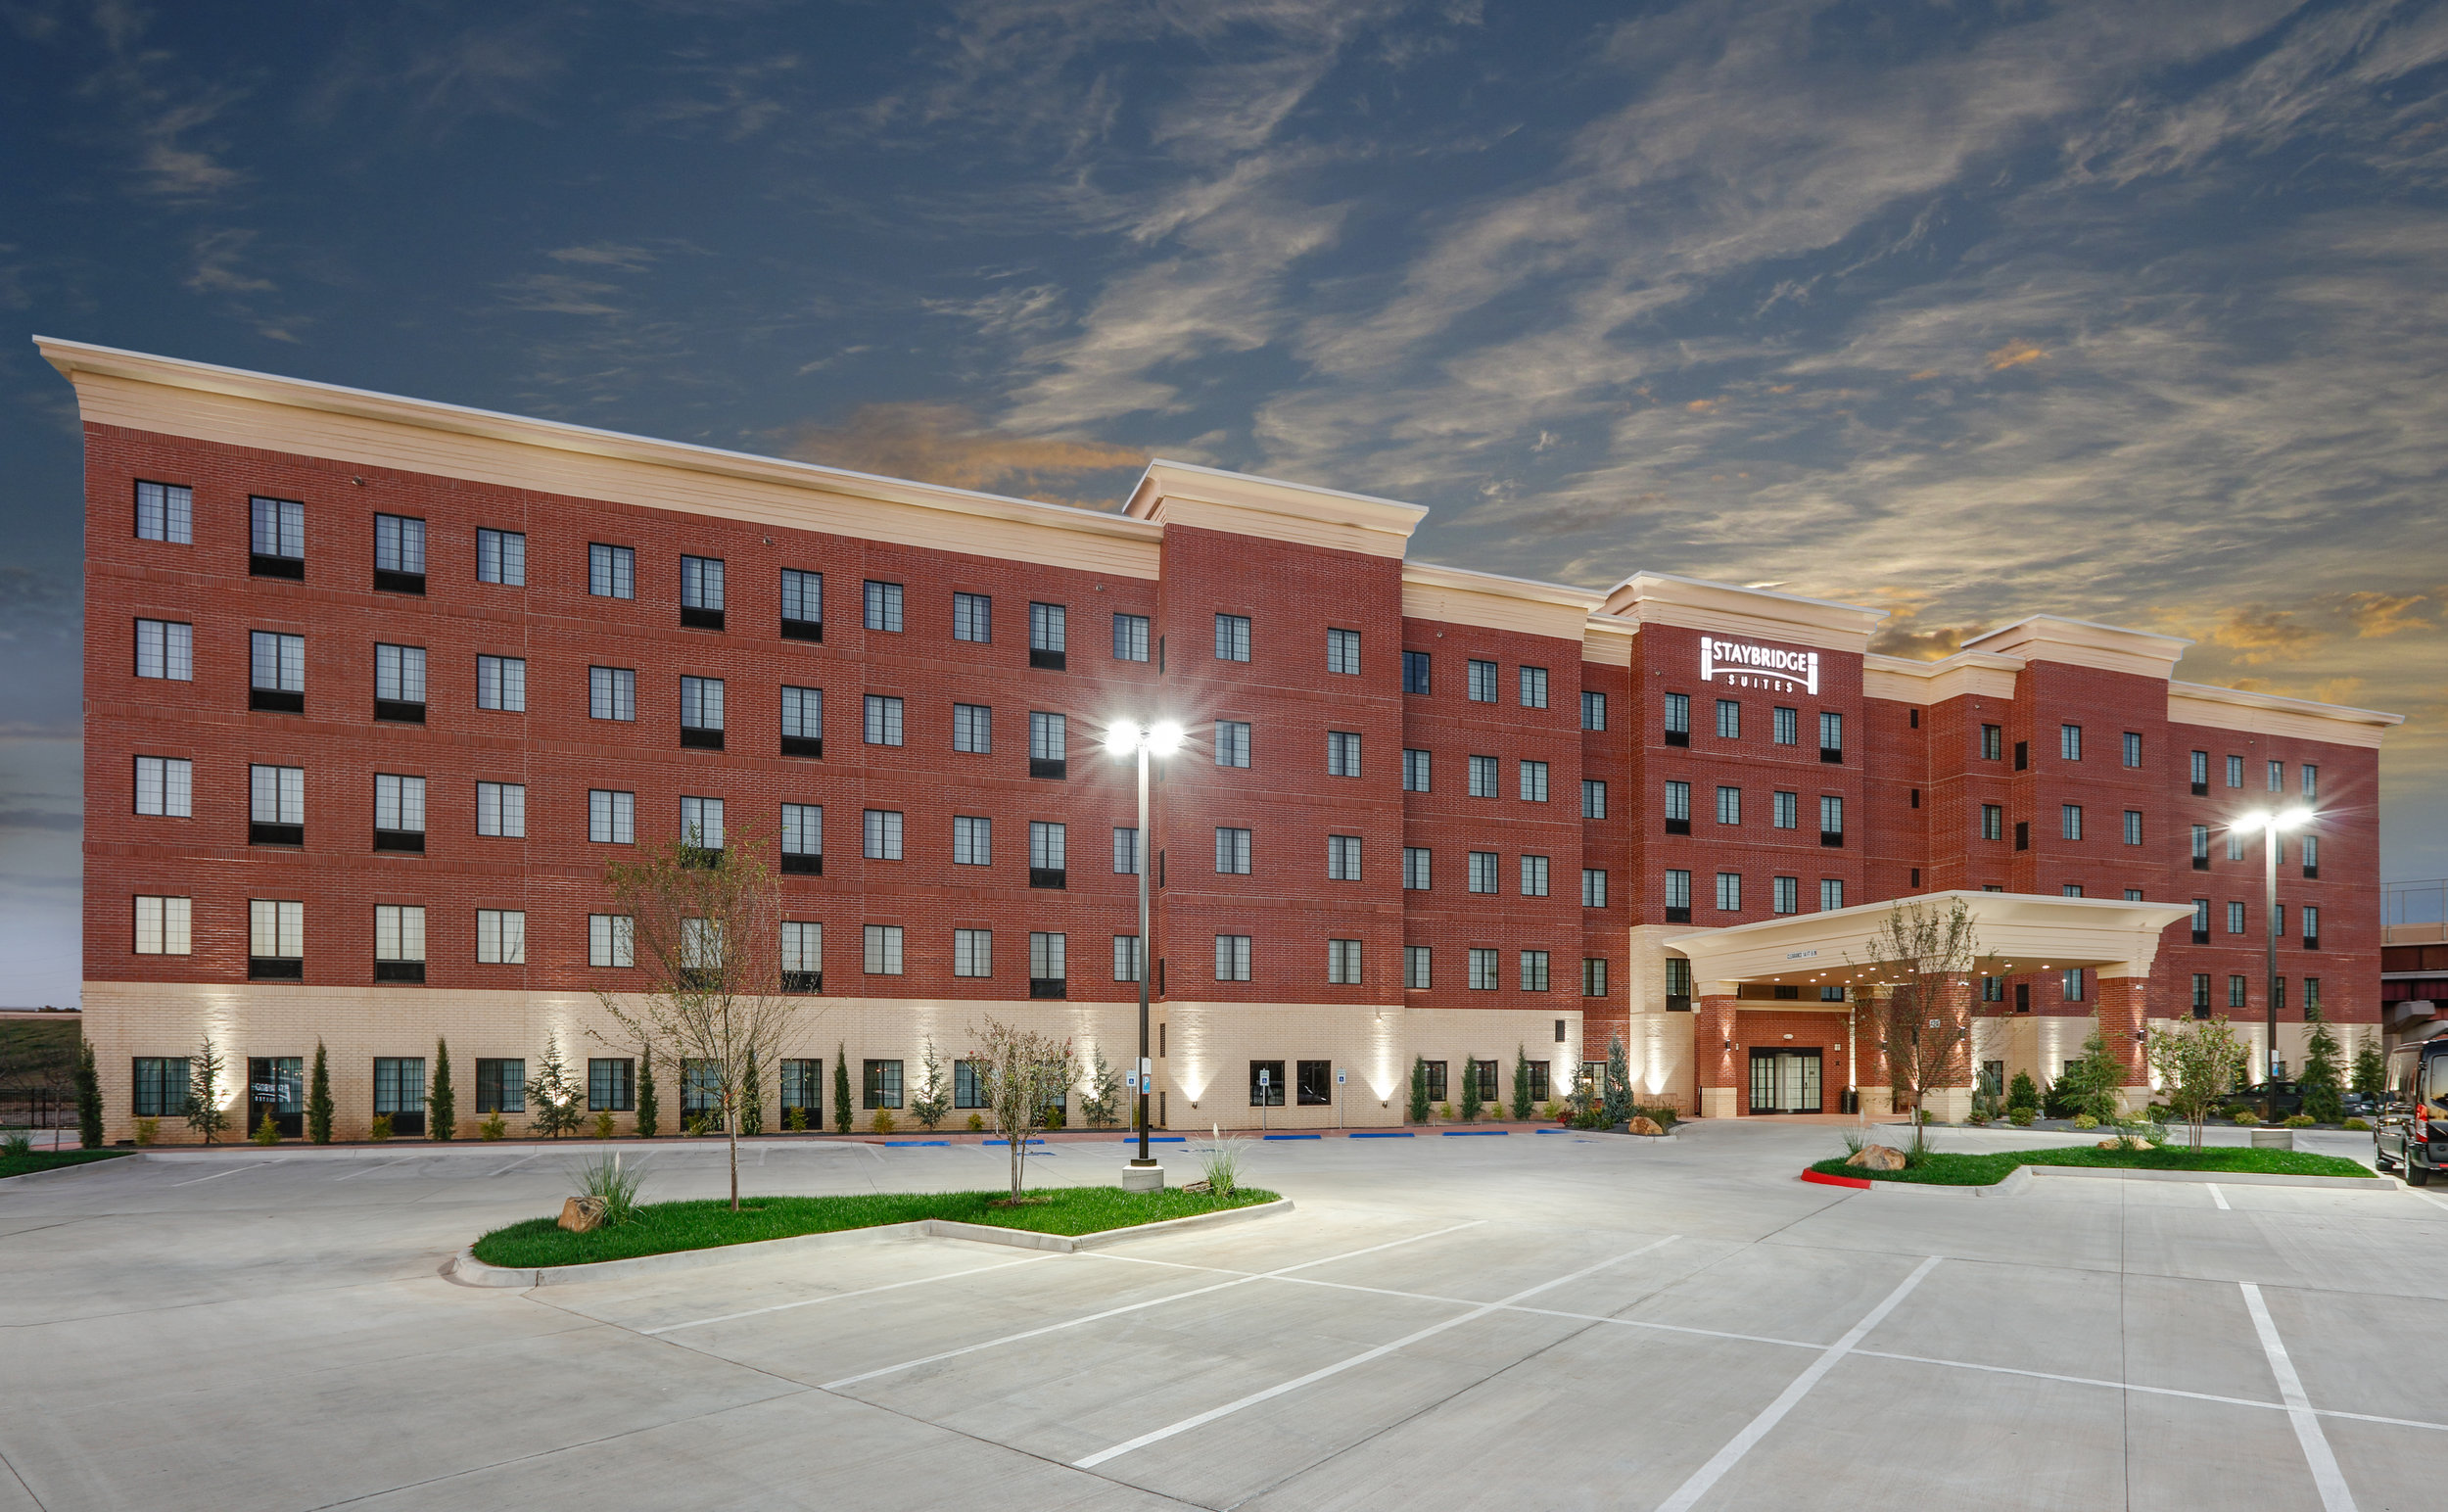 OKCSB_Staybridge_Suites_Oklahoma_City_Exterior_Twilight_1.jpg